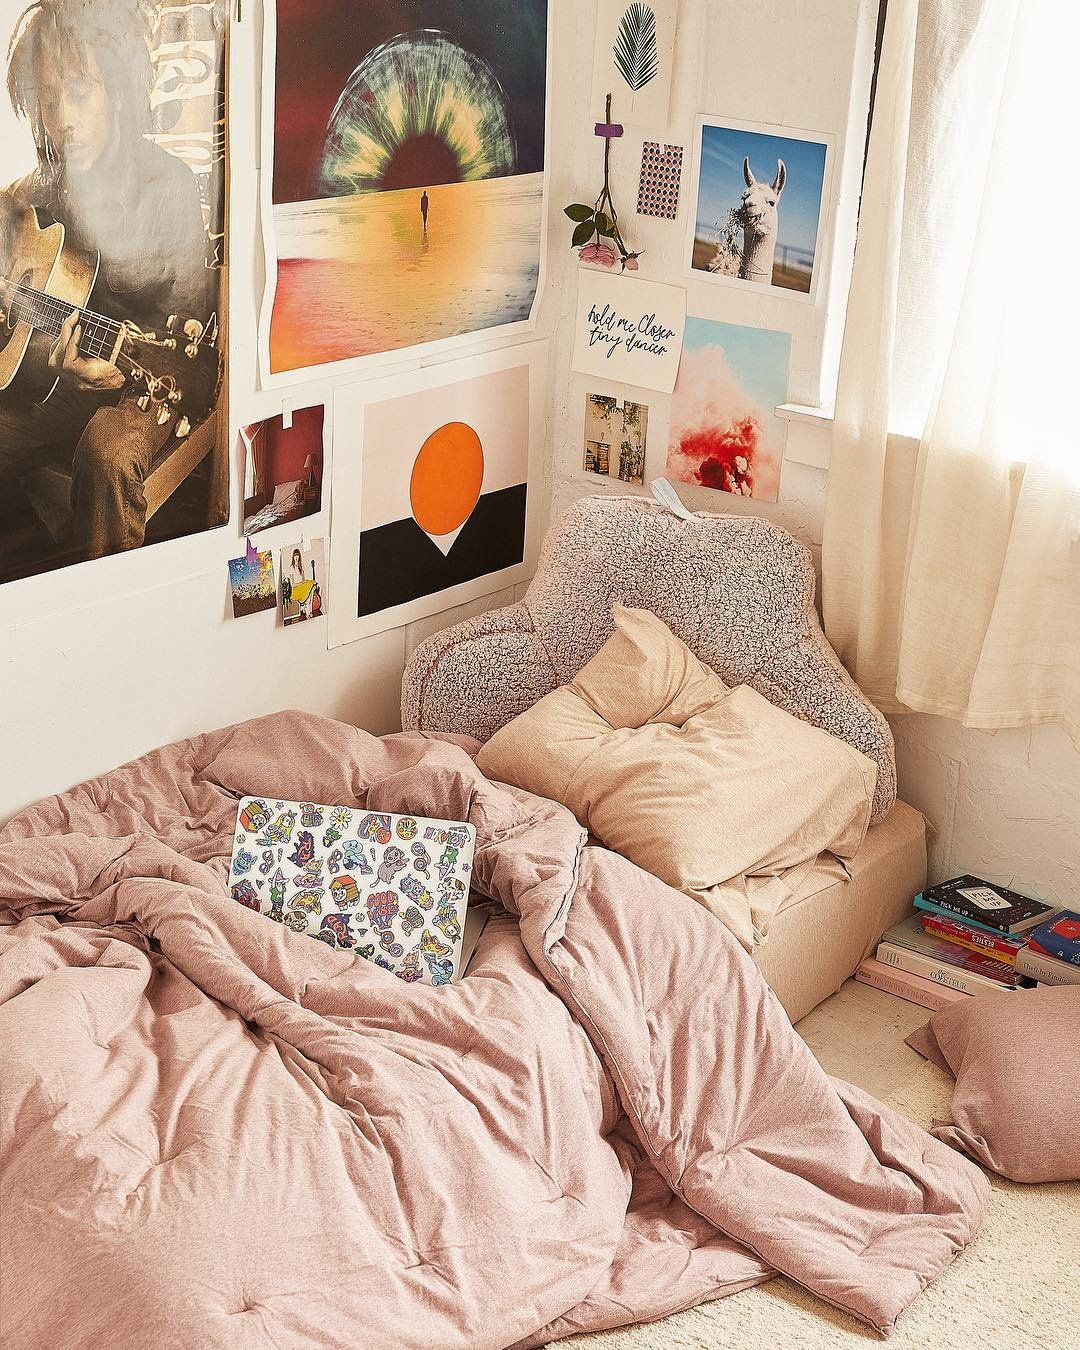 Uooncampus Urbanoutfitters With Images Dorm Room Decor Dorm